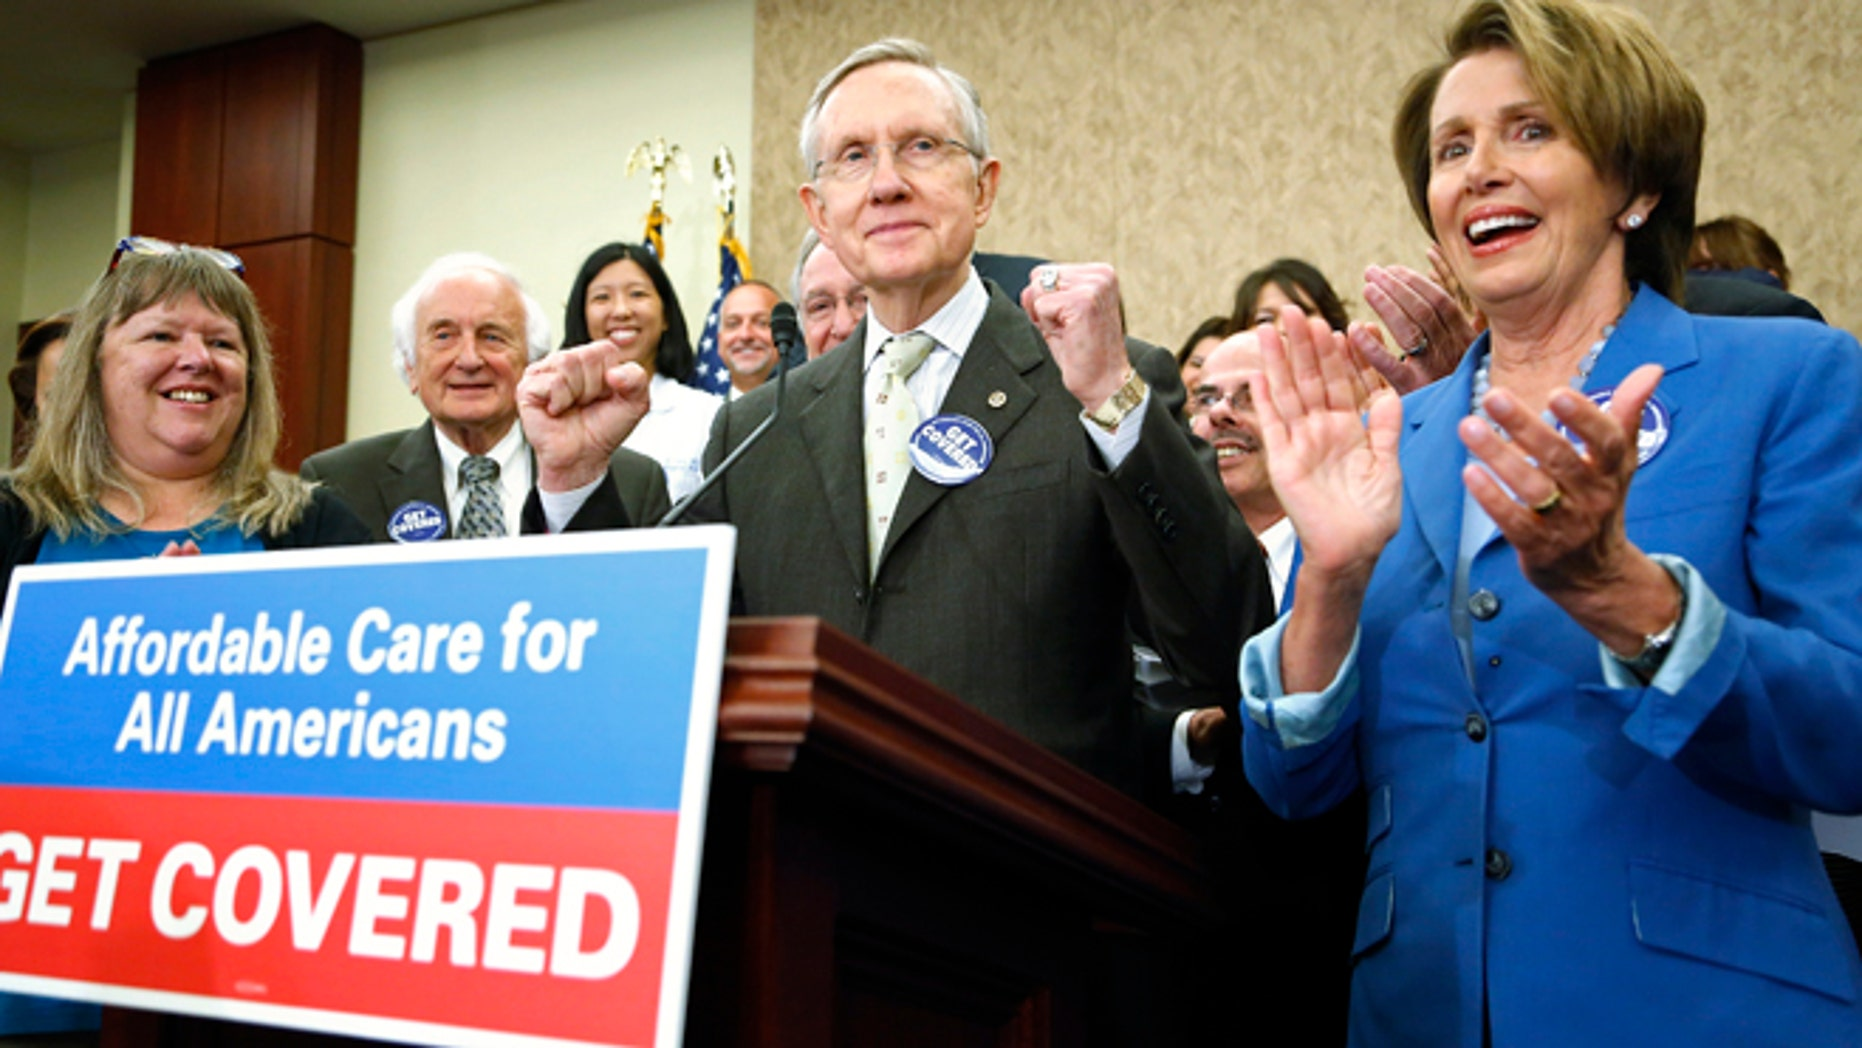 Oct. 1, 2013: U.S. Senate Democratic leader Harry Reid (C) and House Minority Leader Nancy Pelosi (R) lead a rally to celebrate the start of the Affordable Care Act (commonly known as Obamacare) at the U.S. Capitol in Washington.